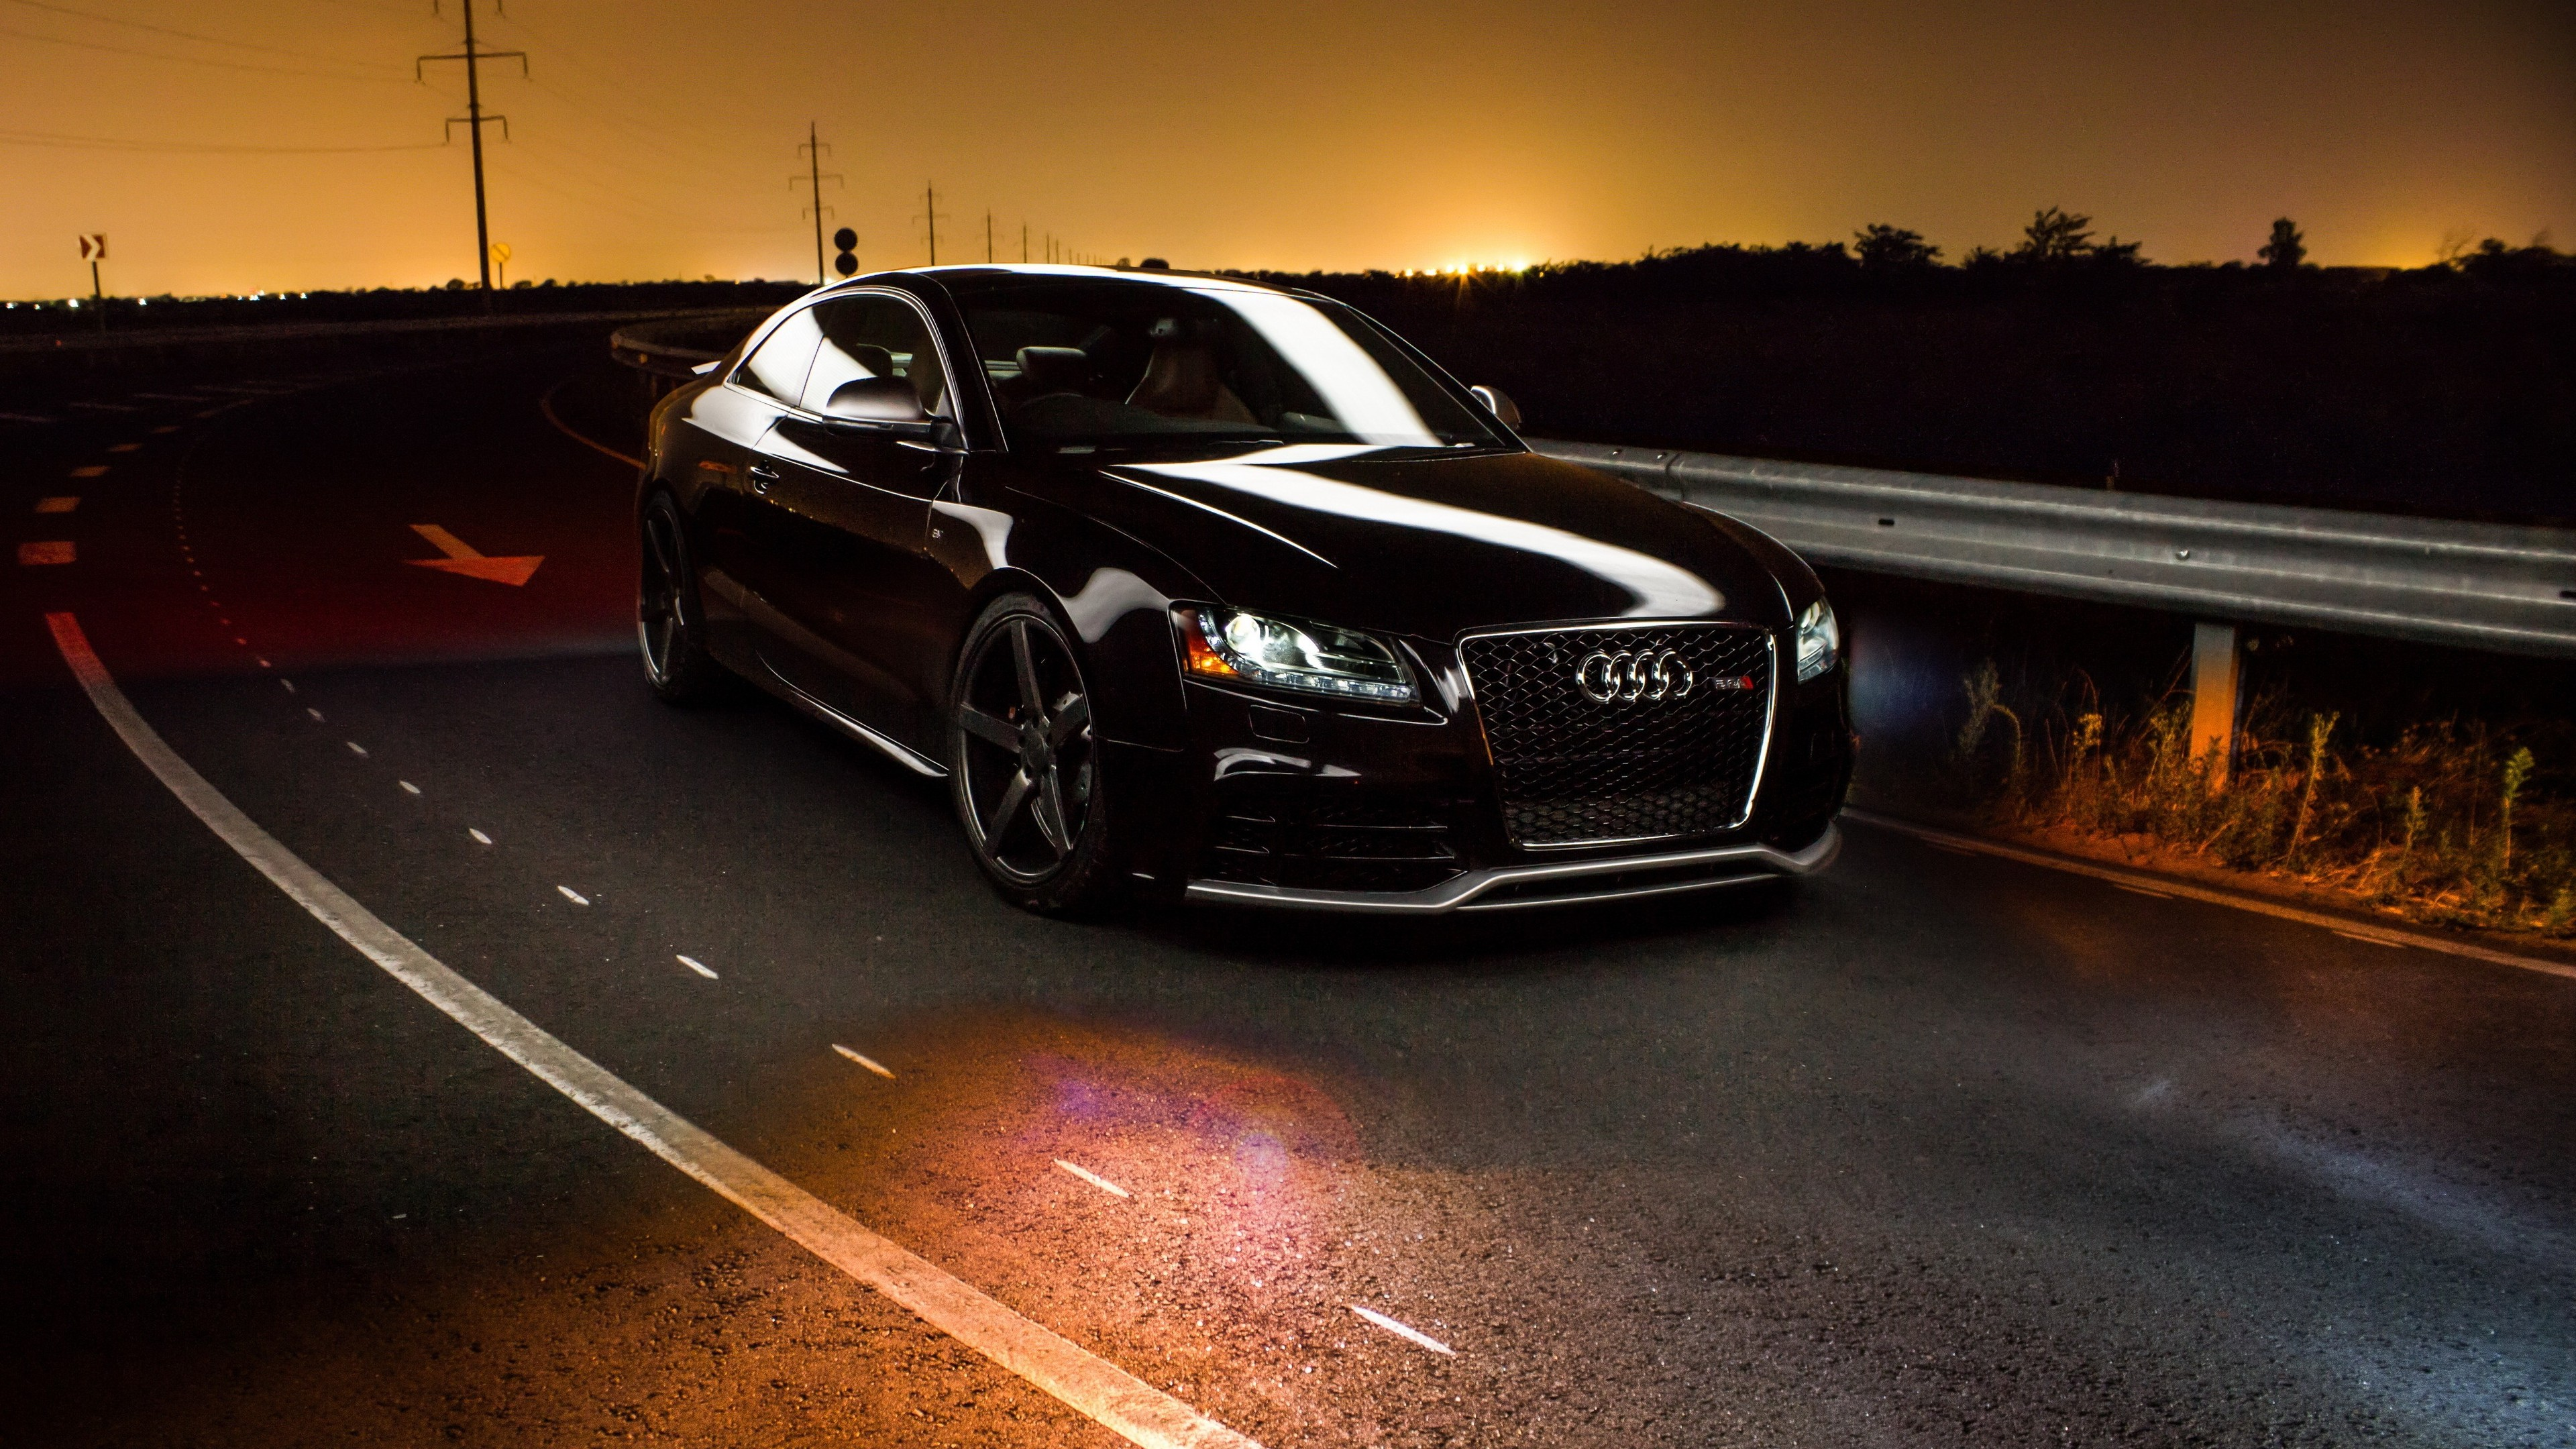 Audi Road Sunset HD Cars K Wallpapers Images Backgrounds - Sunset audi